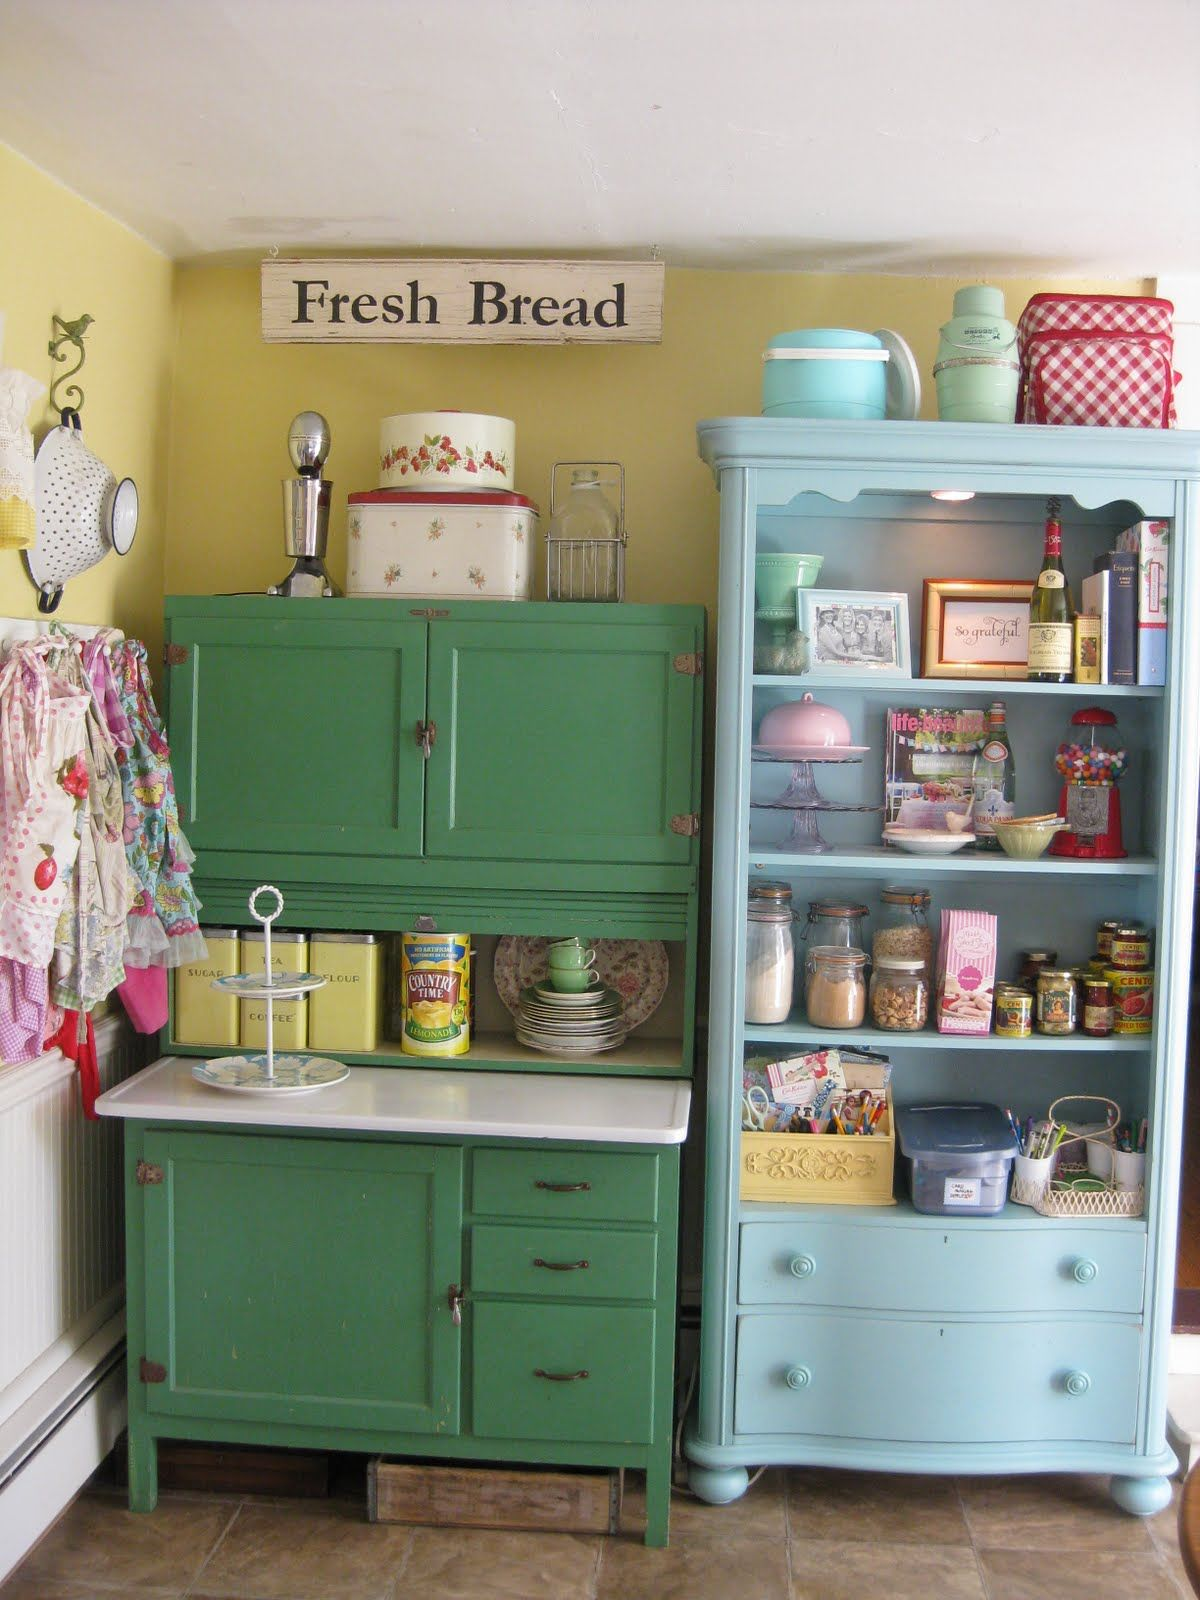 Kitchen Design Vintage Style colorful vintage kitchen storage ideas pictures photos rock n roll